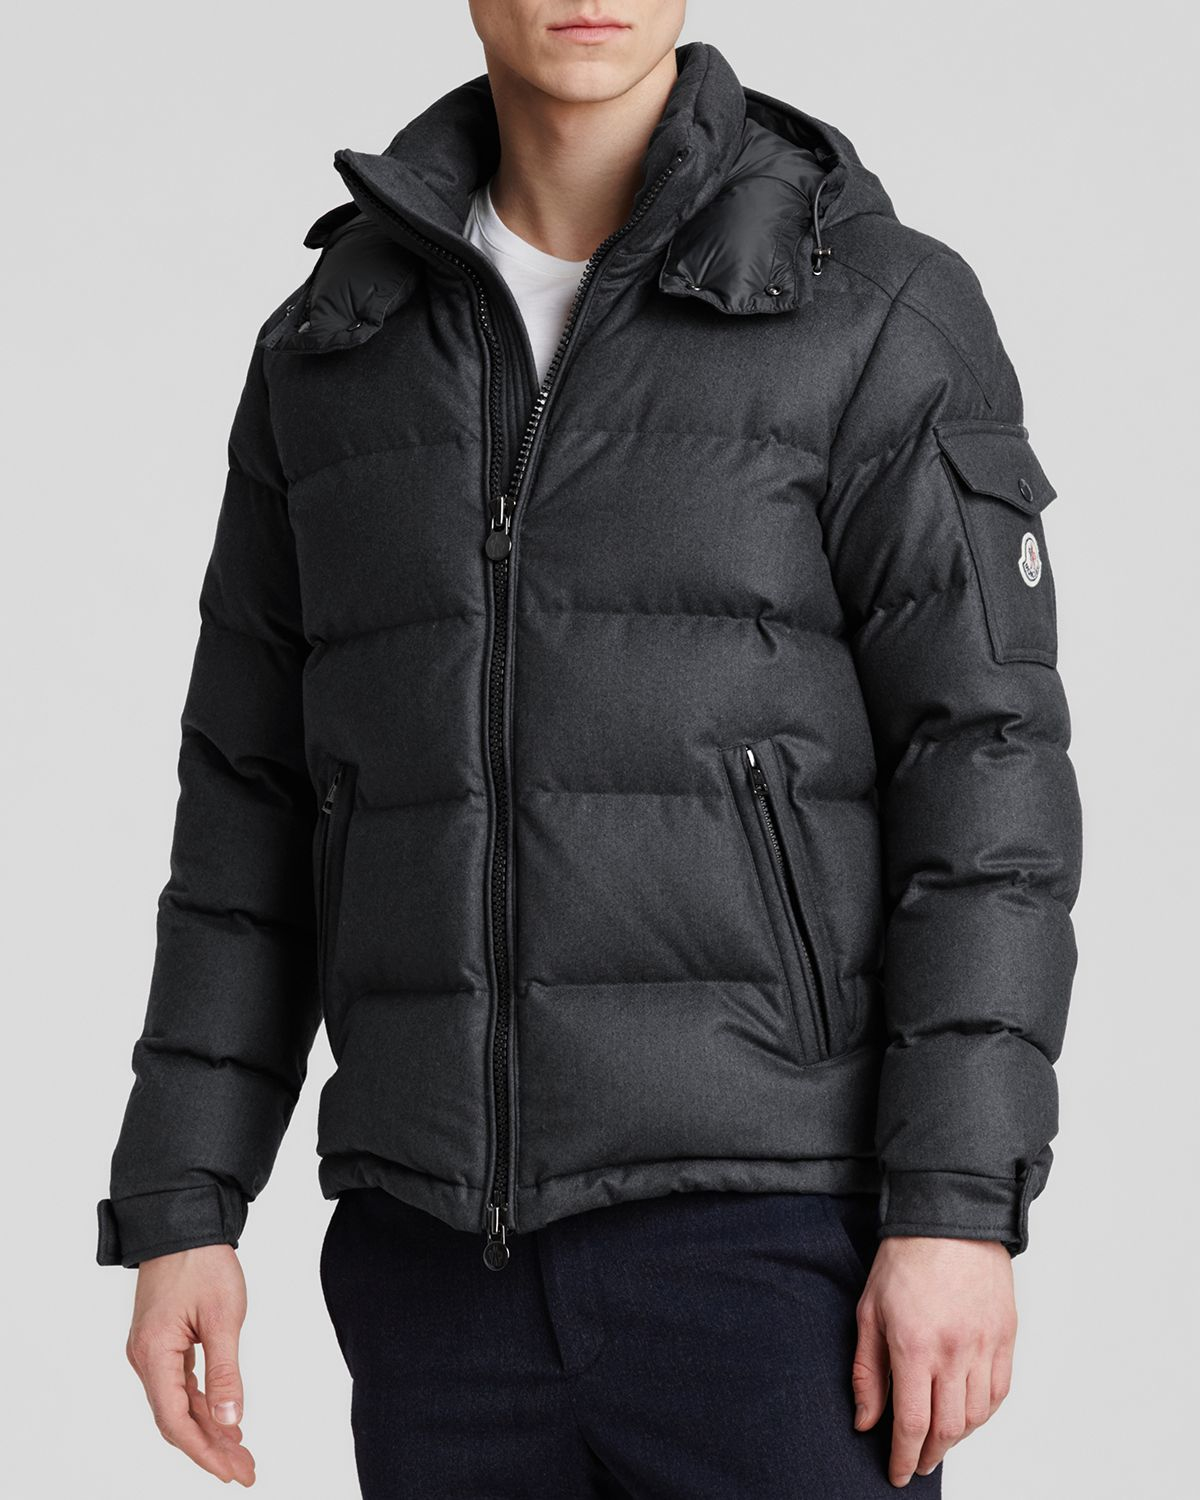 moncler montgenevre down jacket west of rayleigh. Black Bedroom Furniture Sets. Home Design Ideas